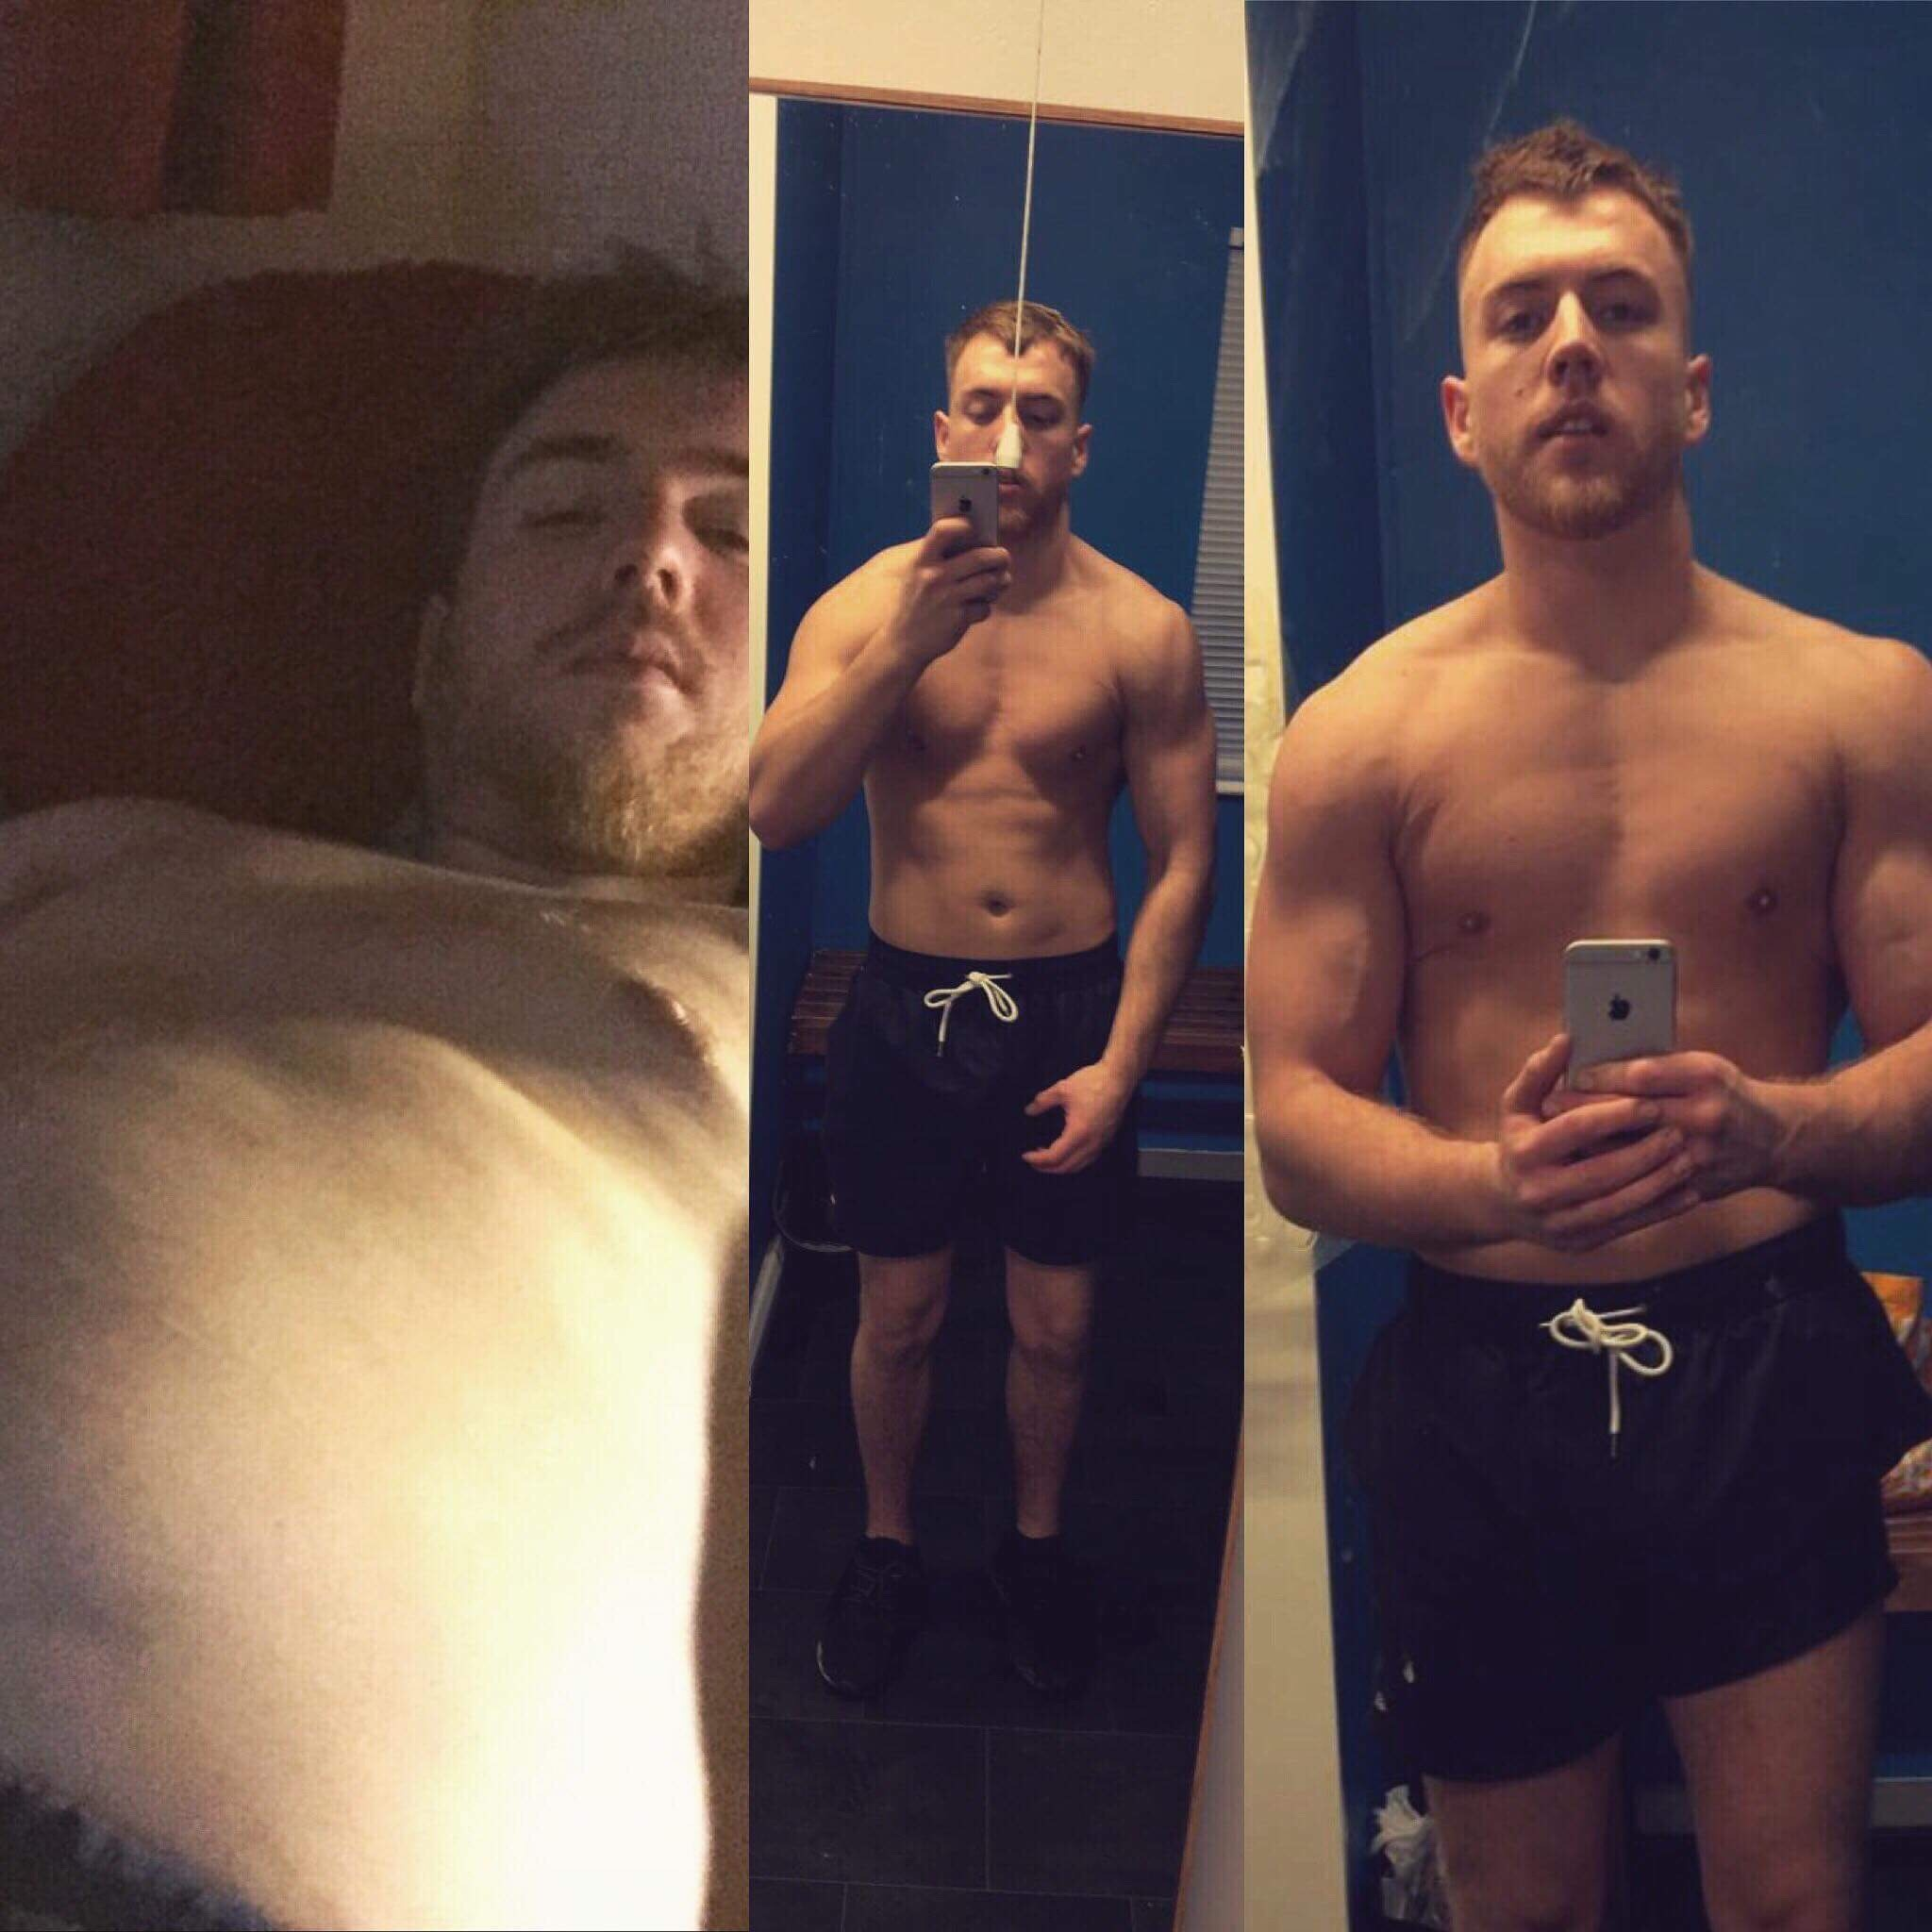 """I dropped 3 stone in 6 months at The Exercise Lounge. I have gone from doing nothing and eating rubbish to exercising 4 times a week and feeling much healthier!"" Danny Pill"